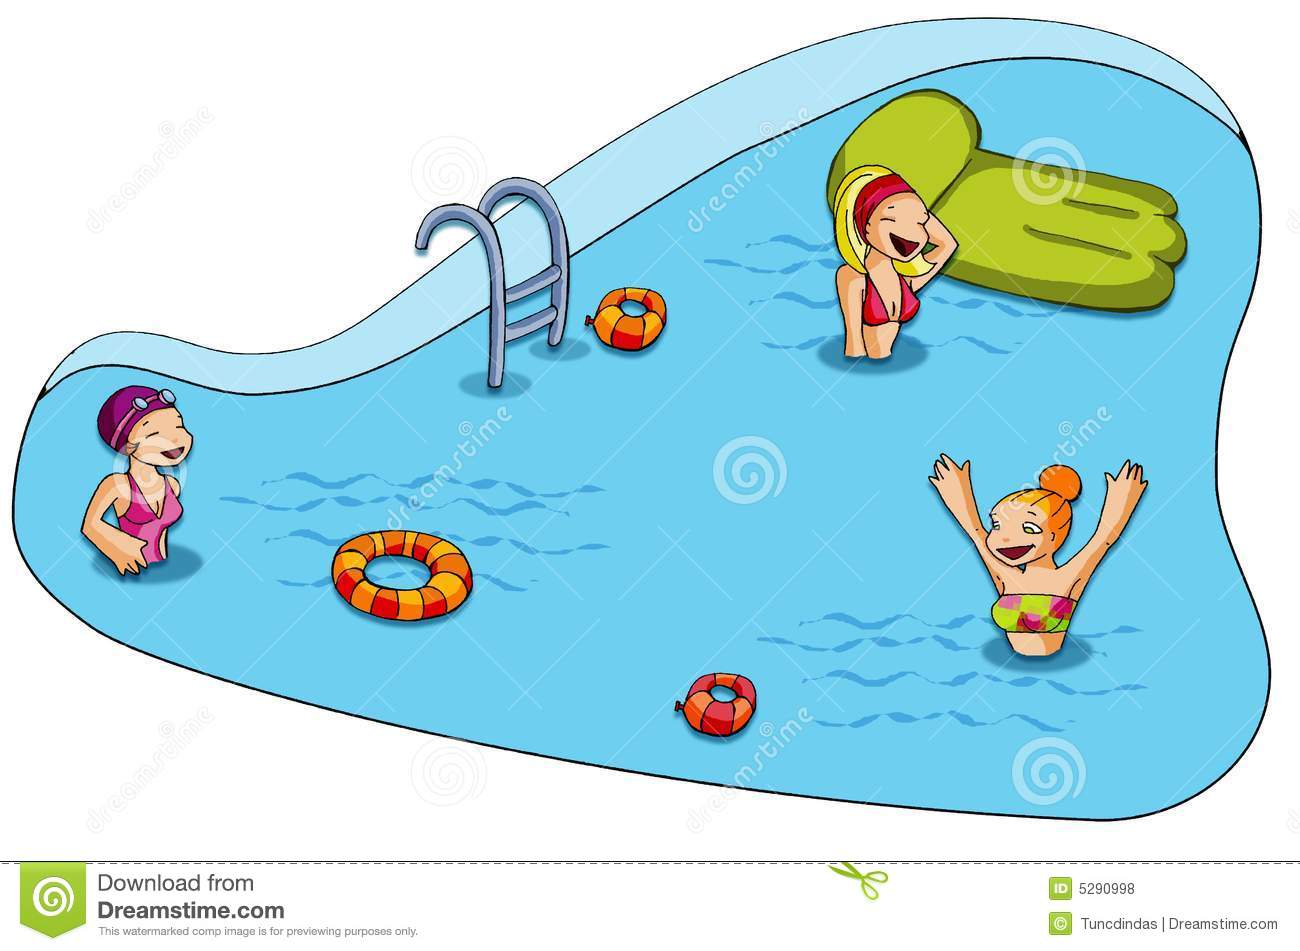 Animated+Swimming+Pool+Clip+Art Swimming Party Clip Art Swimming pool